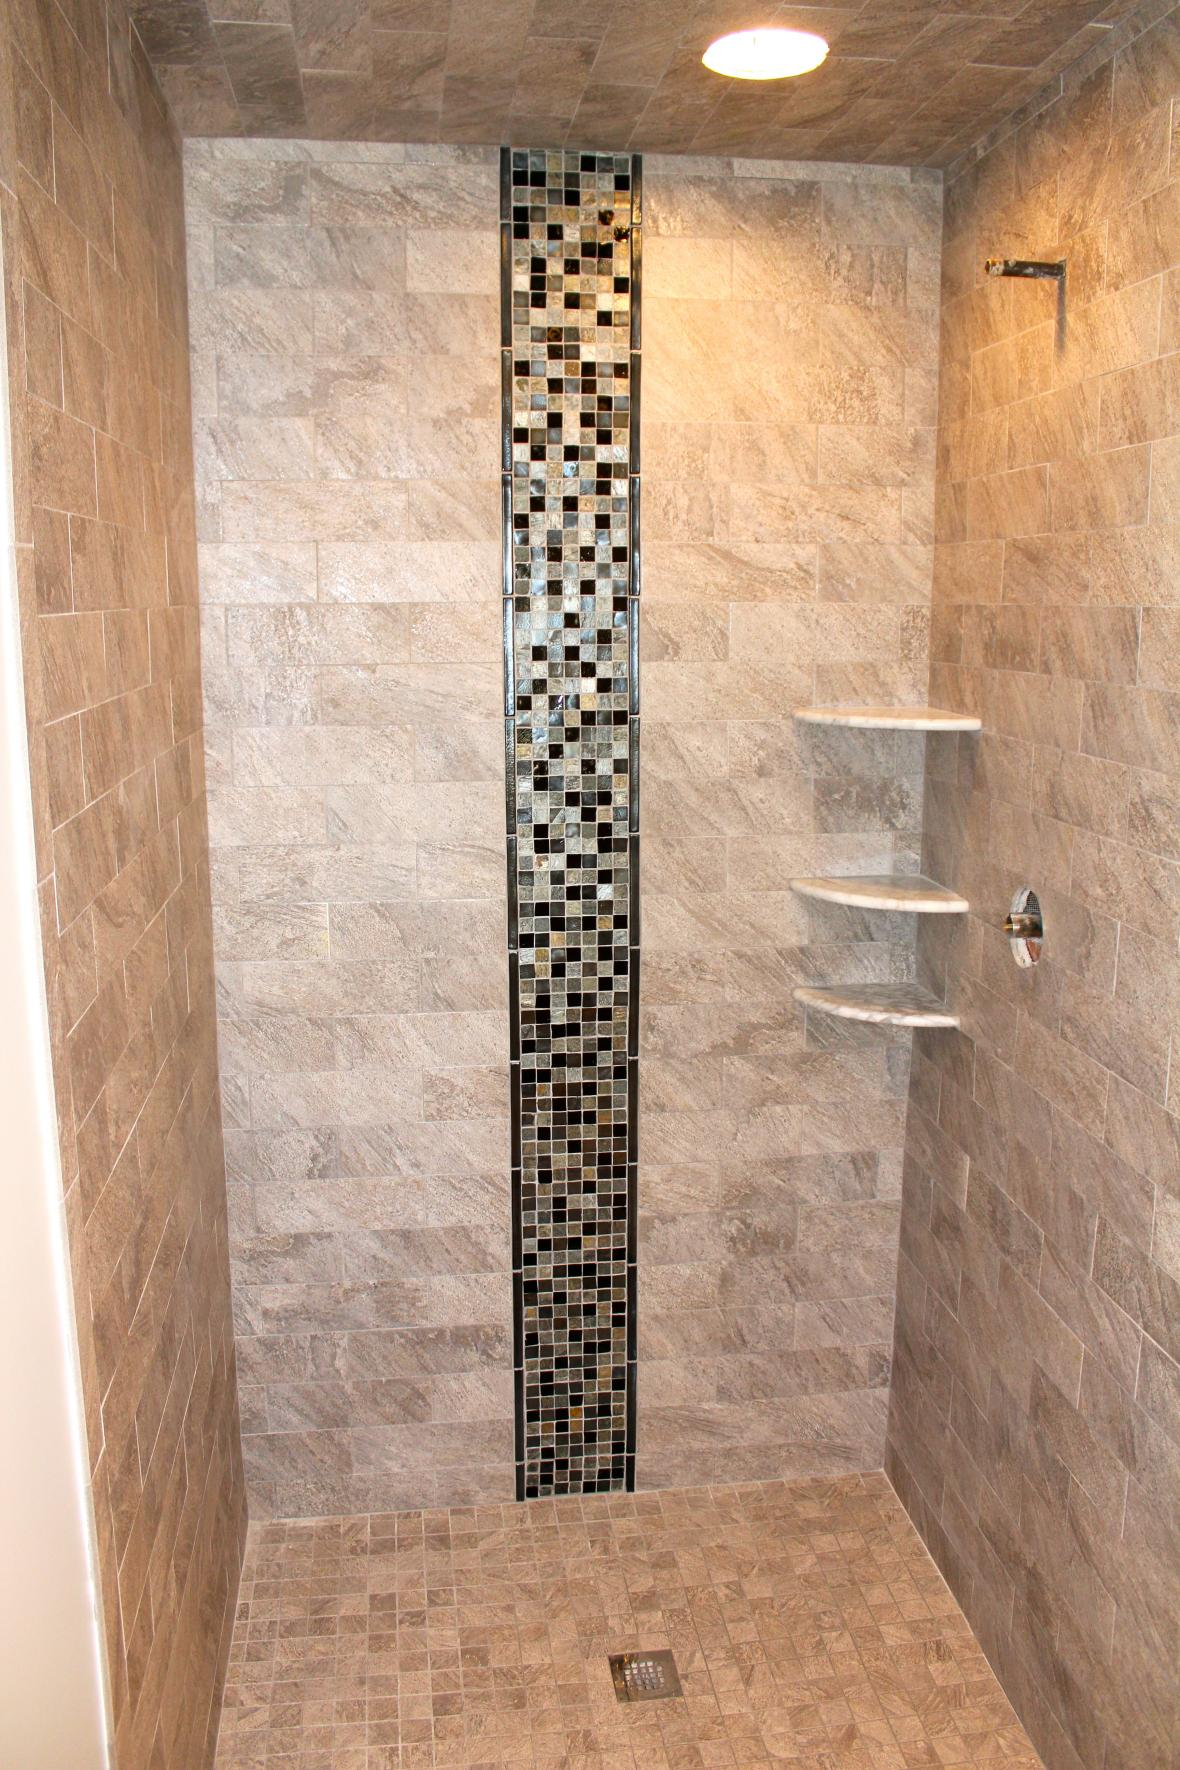 Porcelain Or Ceramic Tile For Shower Pictures Of Showers With Tile 2017 - Grasscloth Wallpaper